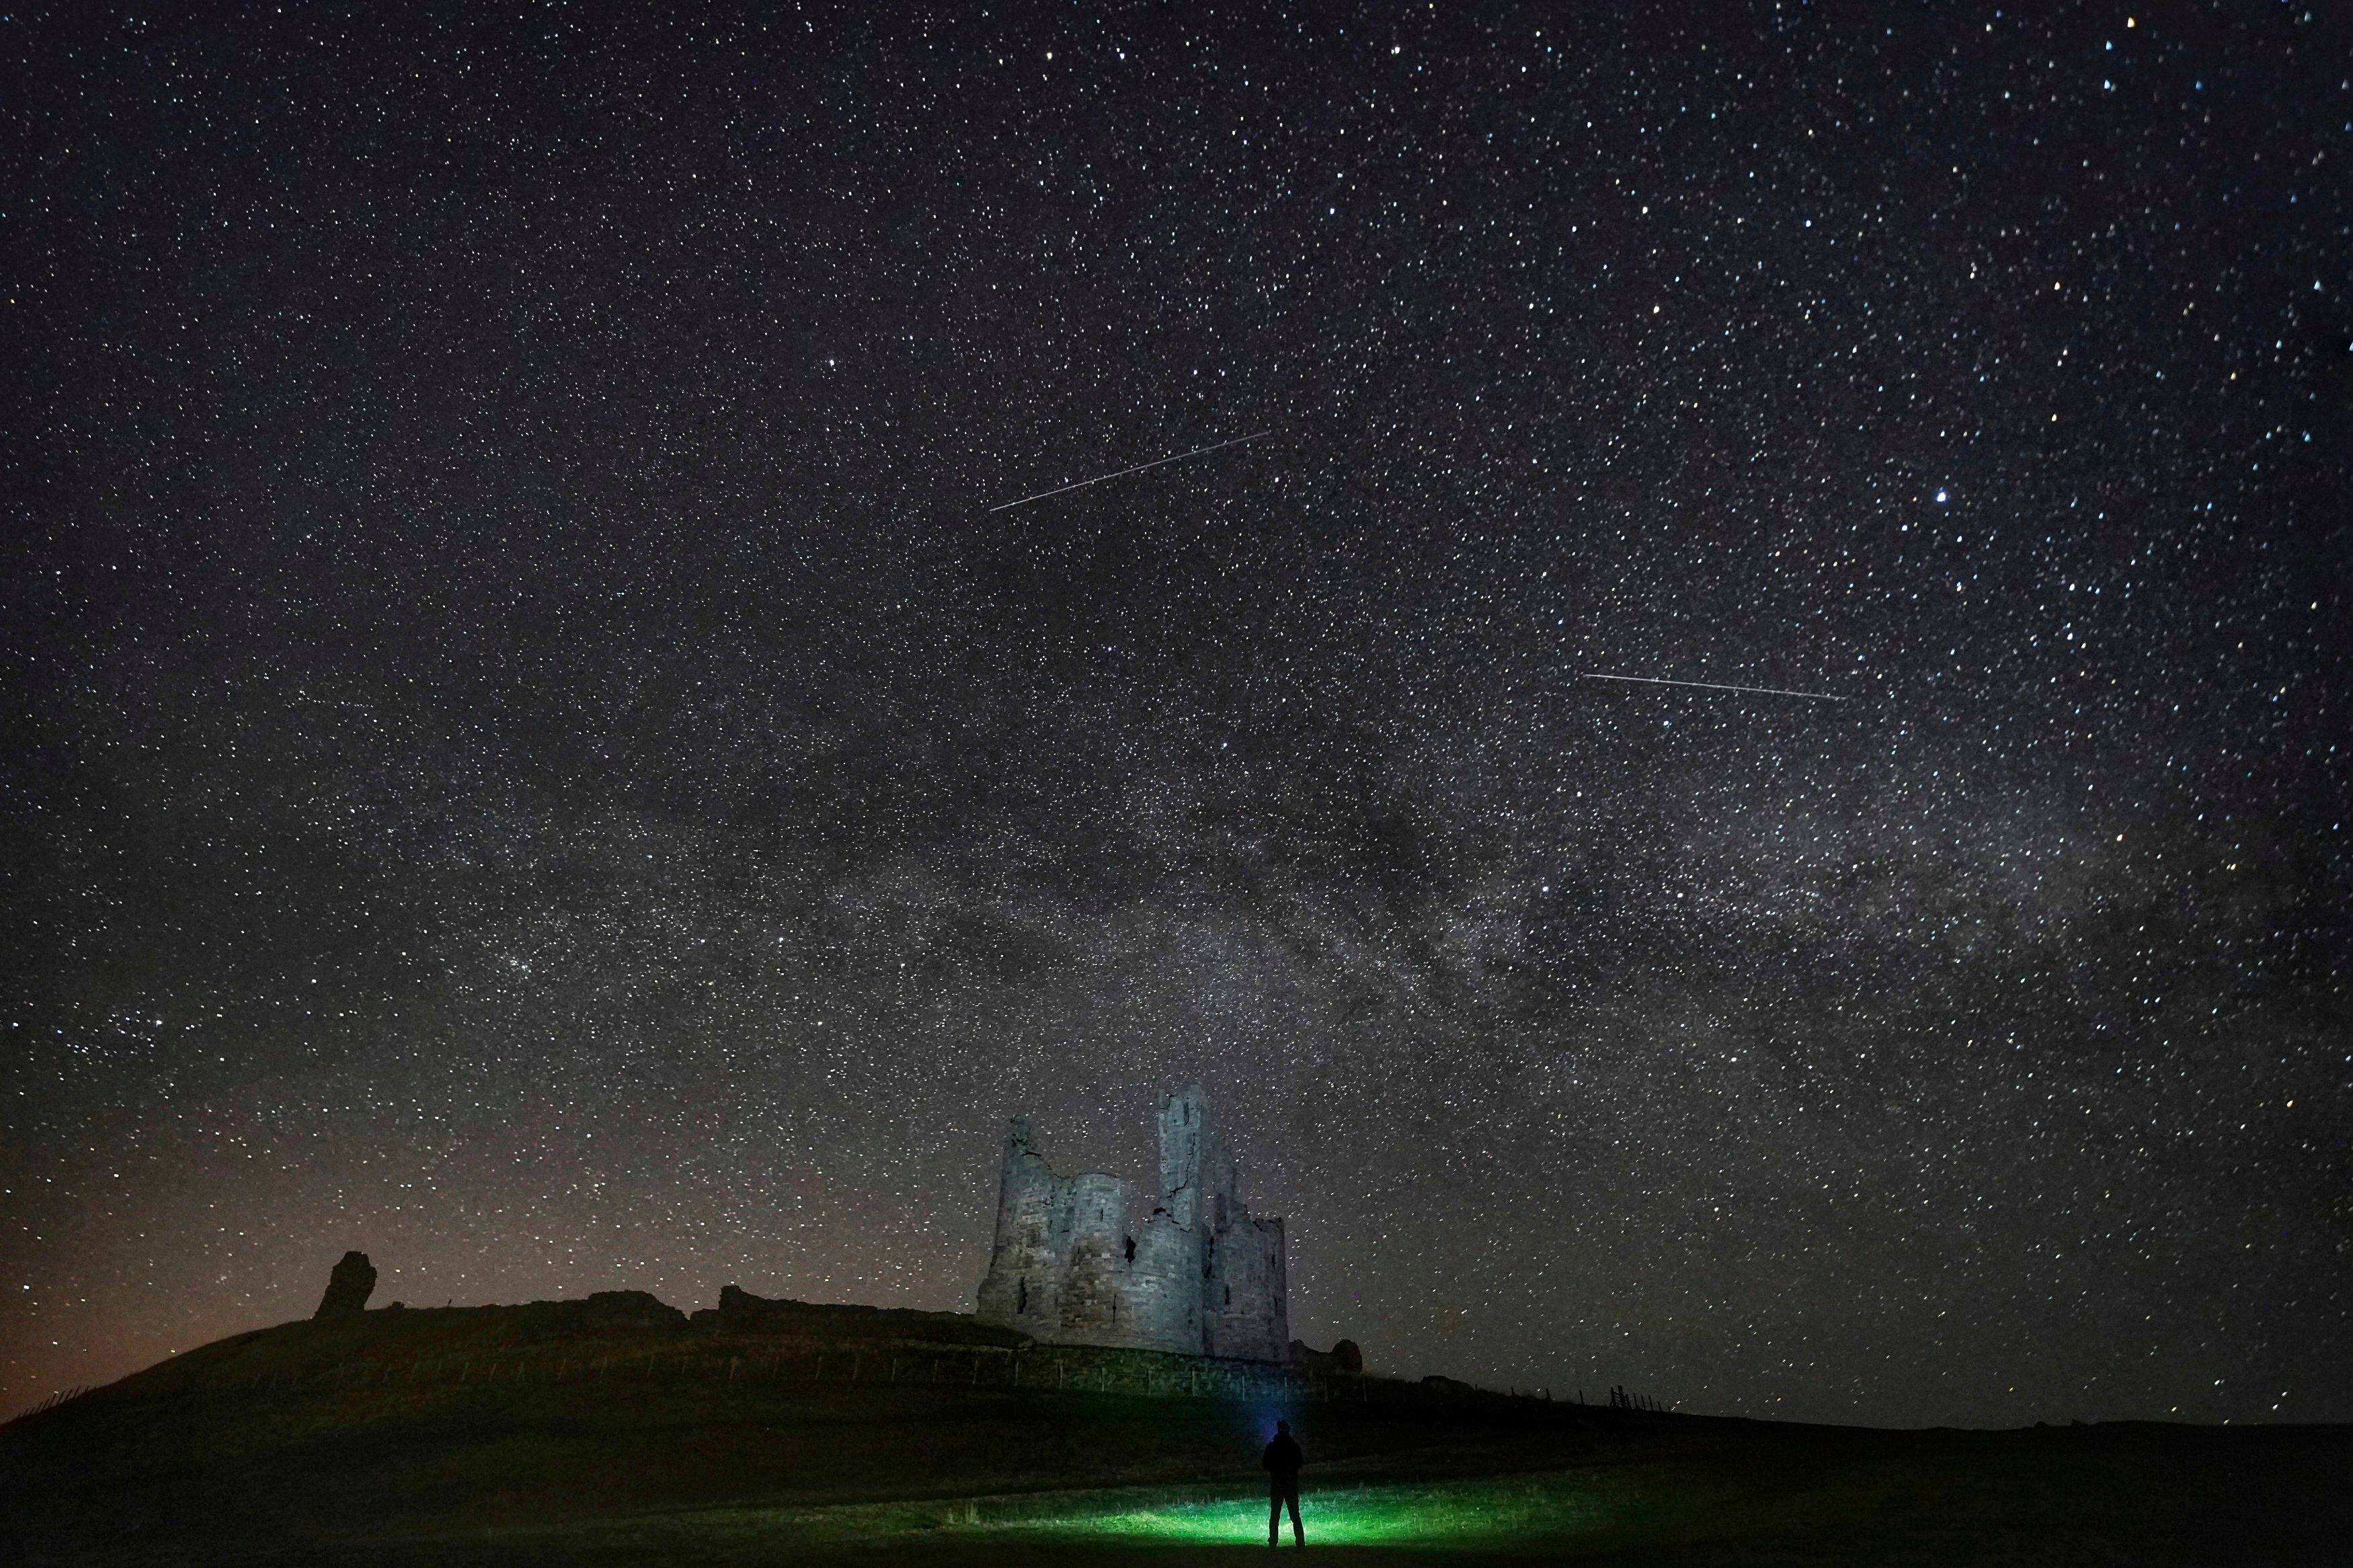 Stars over Dunstanburgh Castle in the early hours of the morning, between the villages of Craster and Embleton, in Northumberland, England, Thursday April 11, 2019.  (Owen Humphreys/PA  via AP)